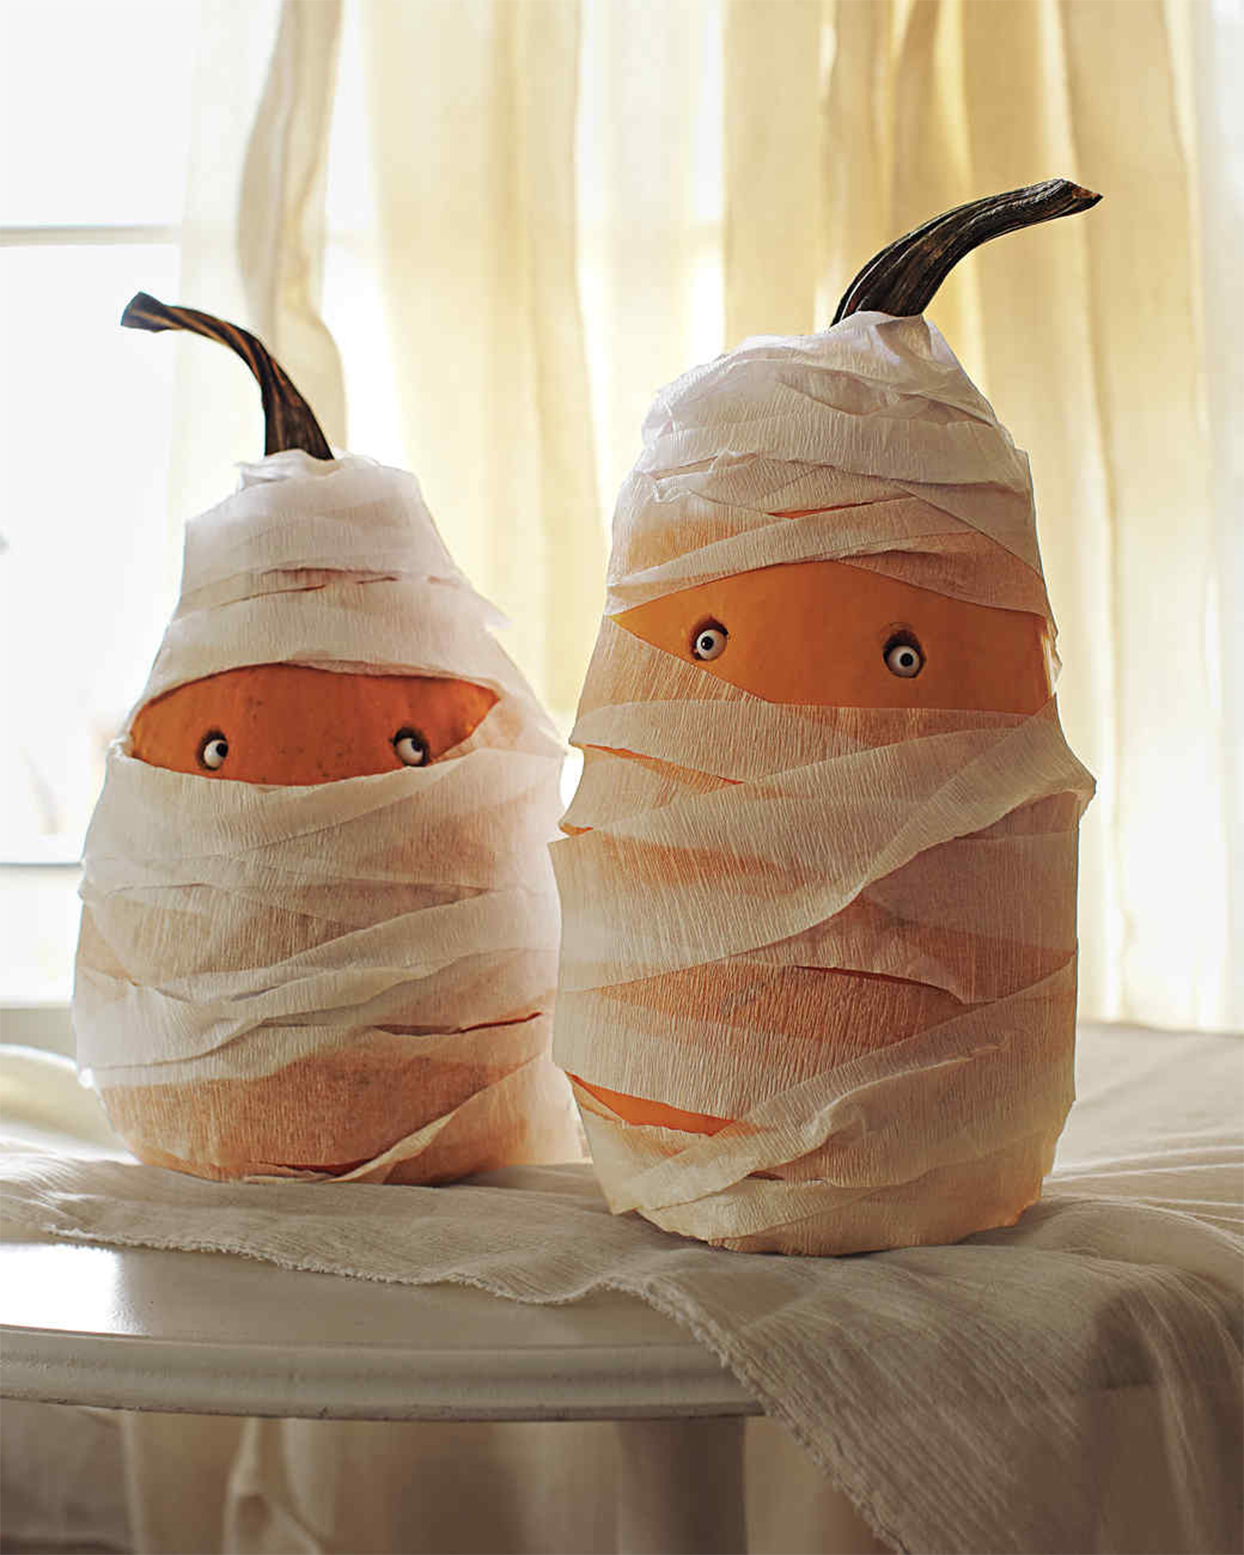 wrapped pumpkins resembling mummies